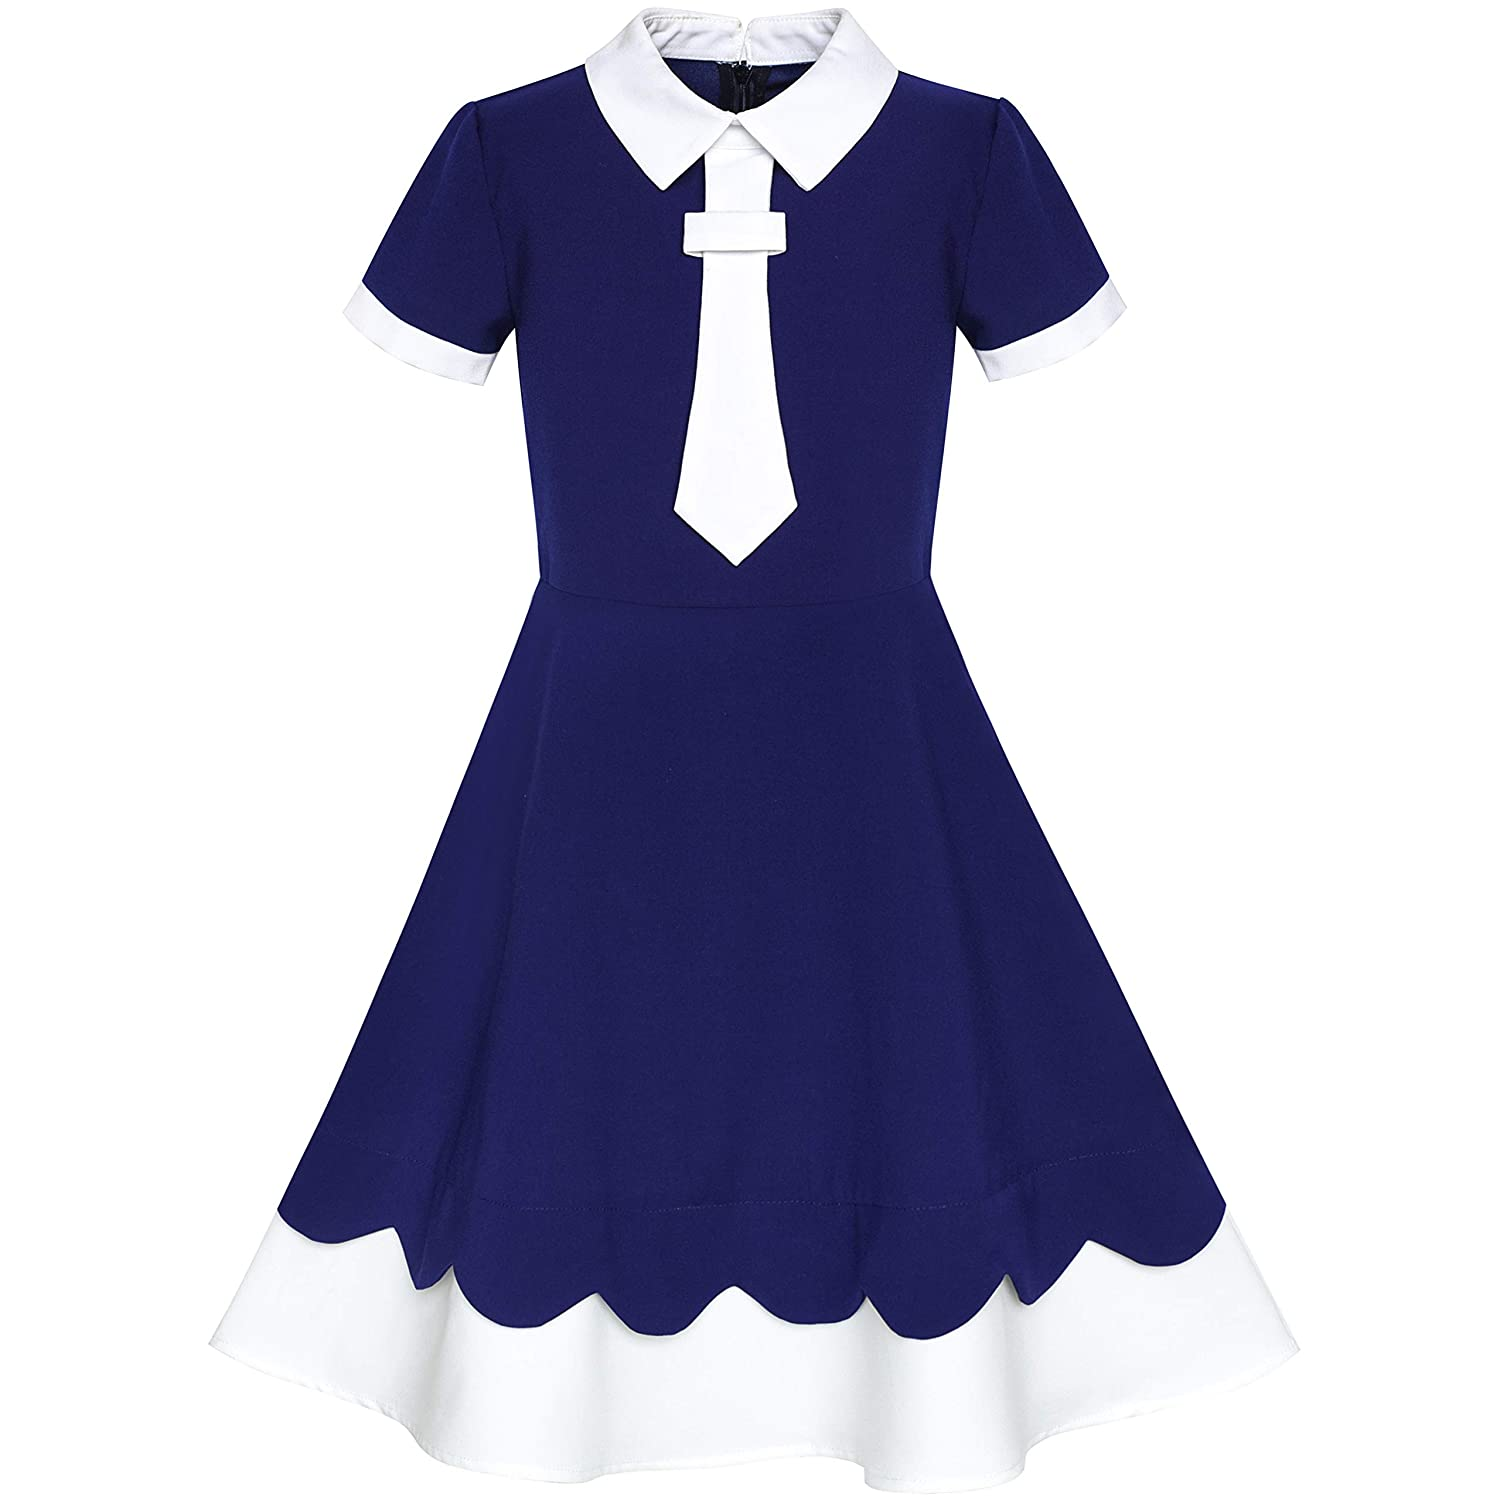 Sunny Fashion Girls Dress Back School Navy Blue White Collar Tie Short Sleeve